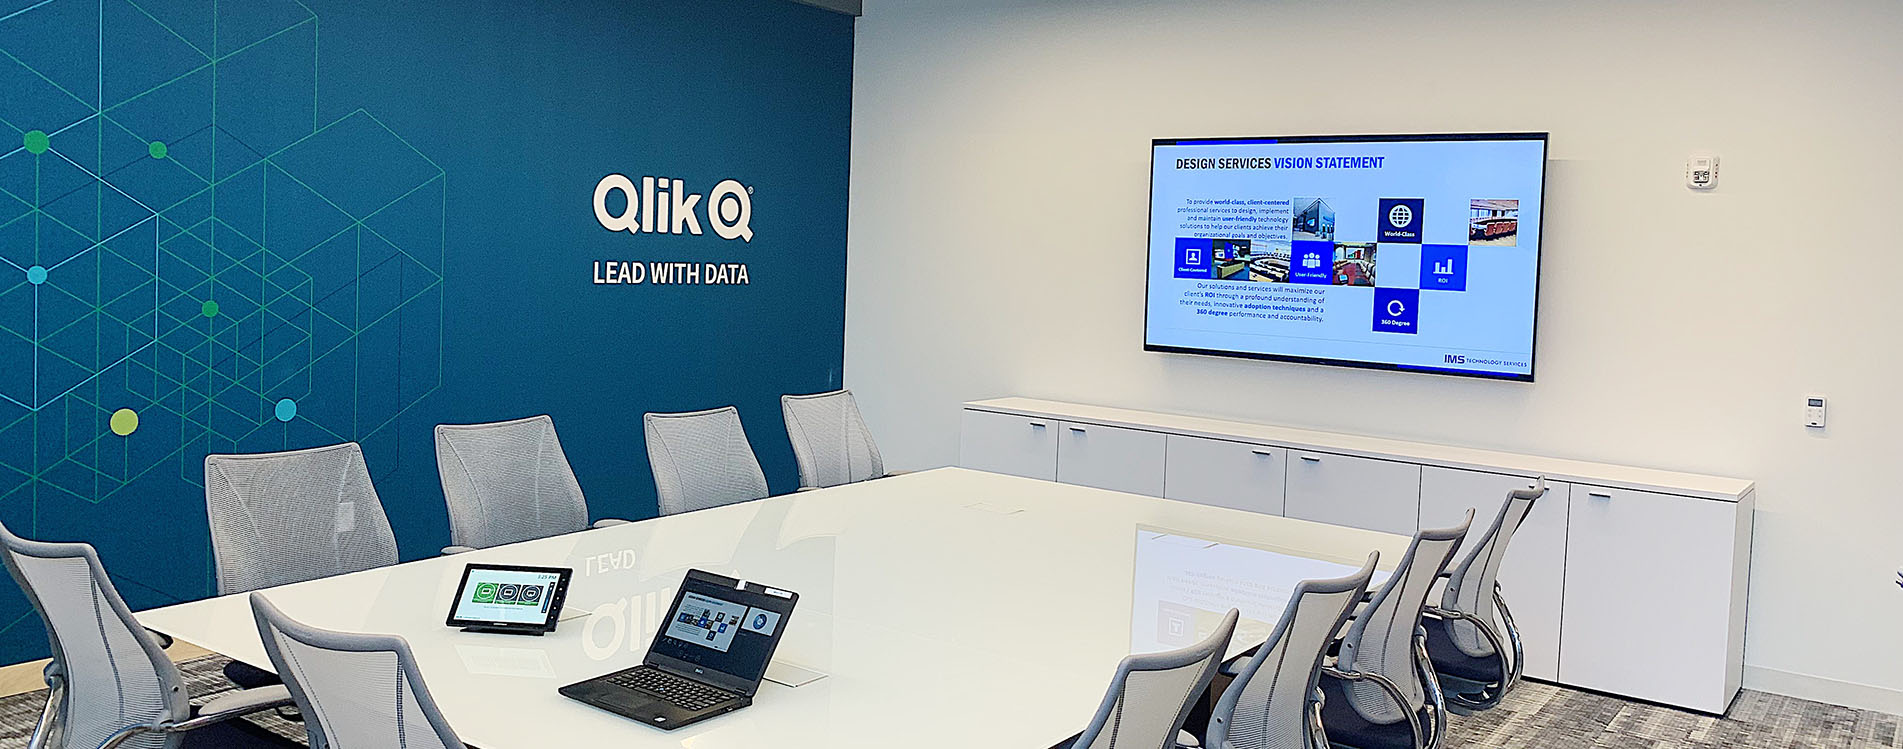 Case Study - Qlik Corporate Headquarters